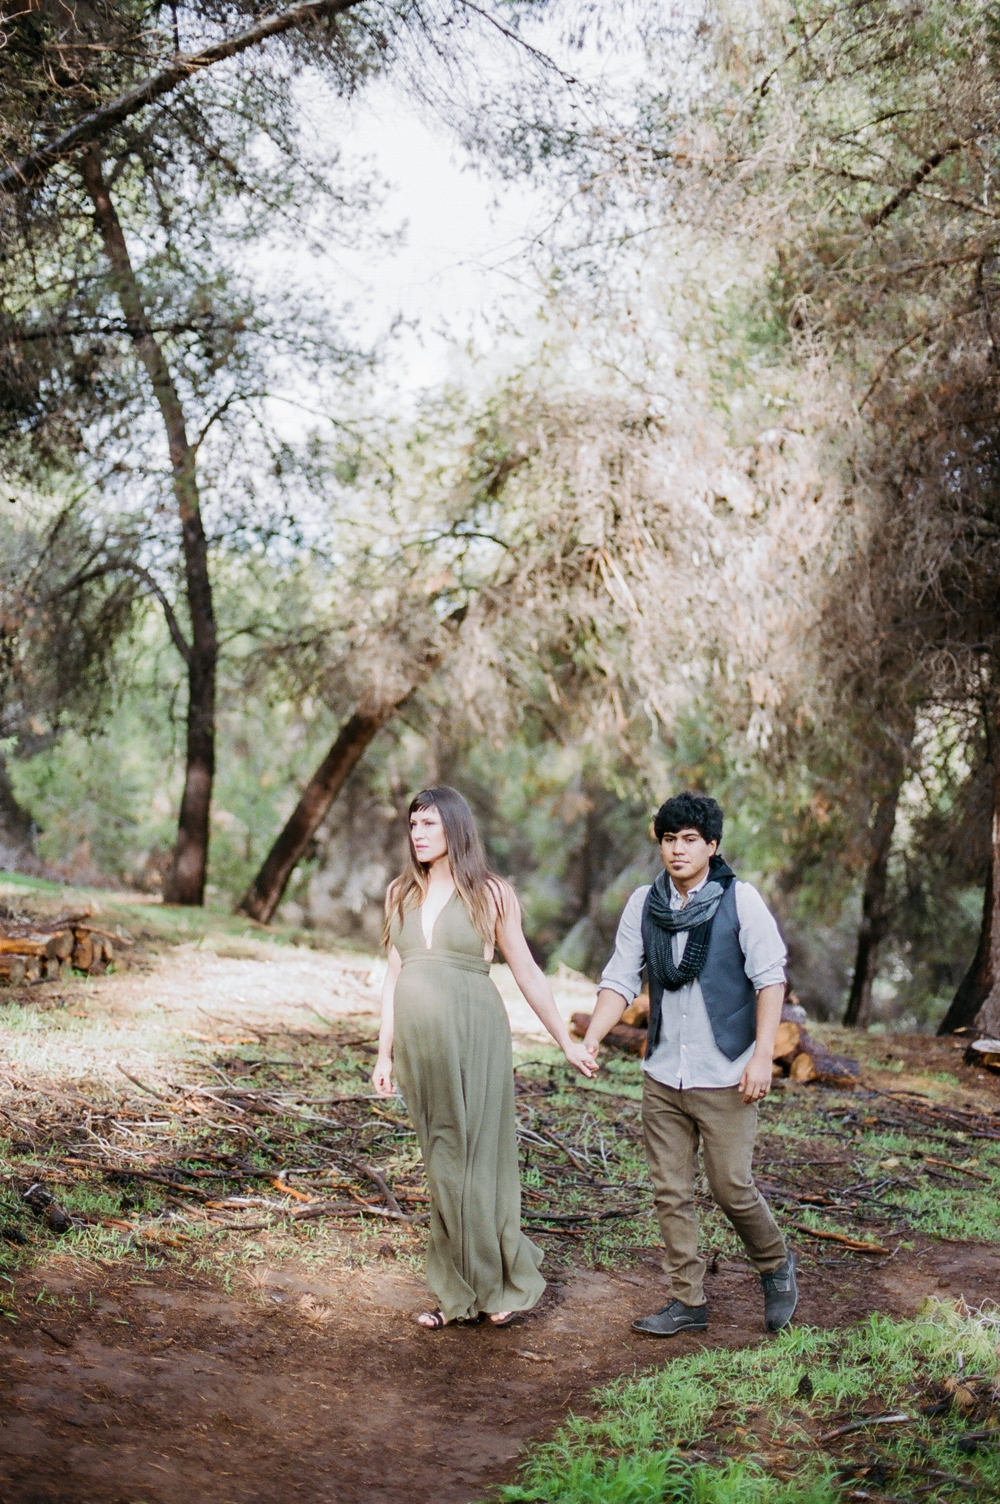 bonelli park maternity czar goss photo hope and aron 6.jpg